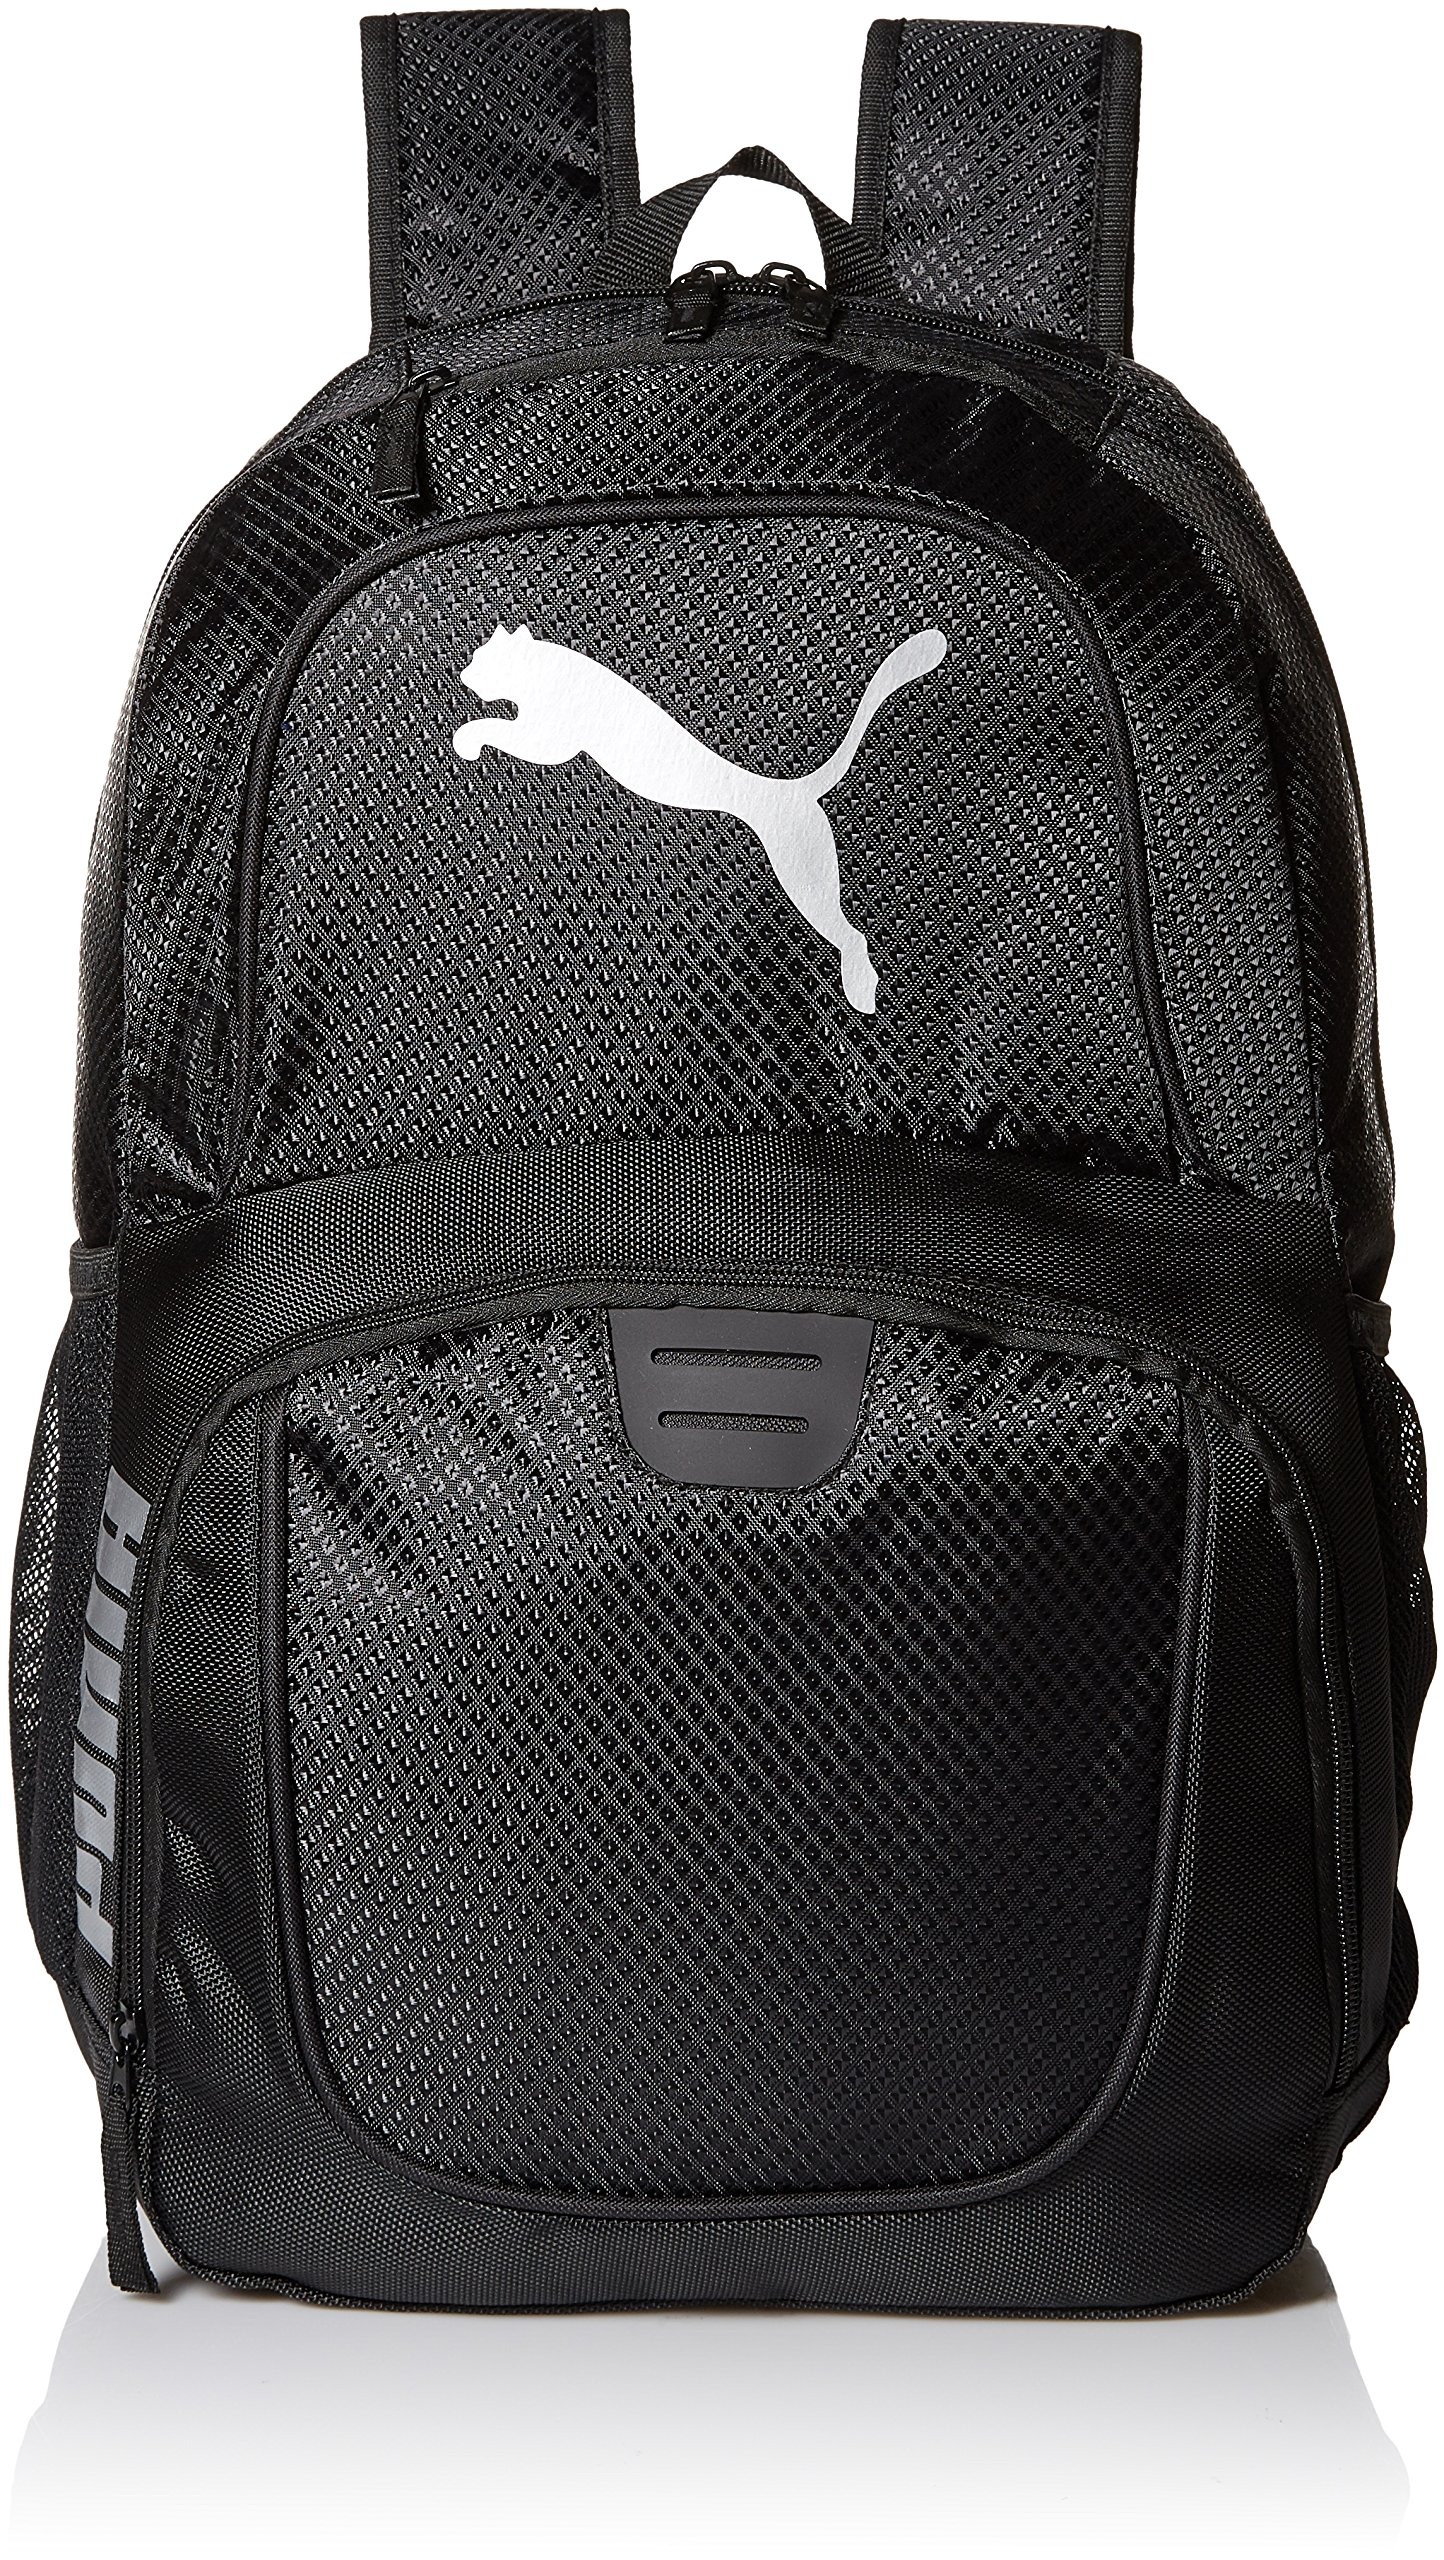 PUMA Men's Evercat Contender 3.0 Backpack, deep black, One Size by PUMA